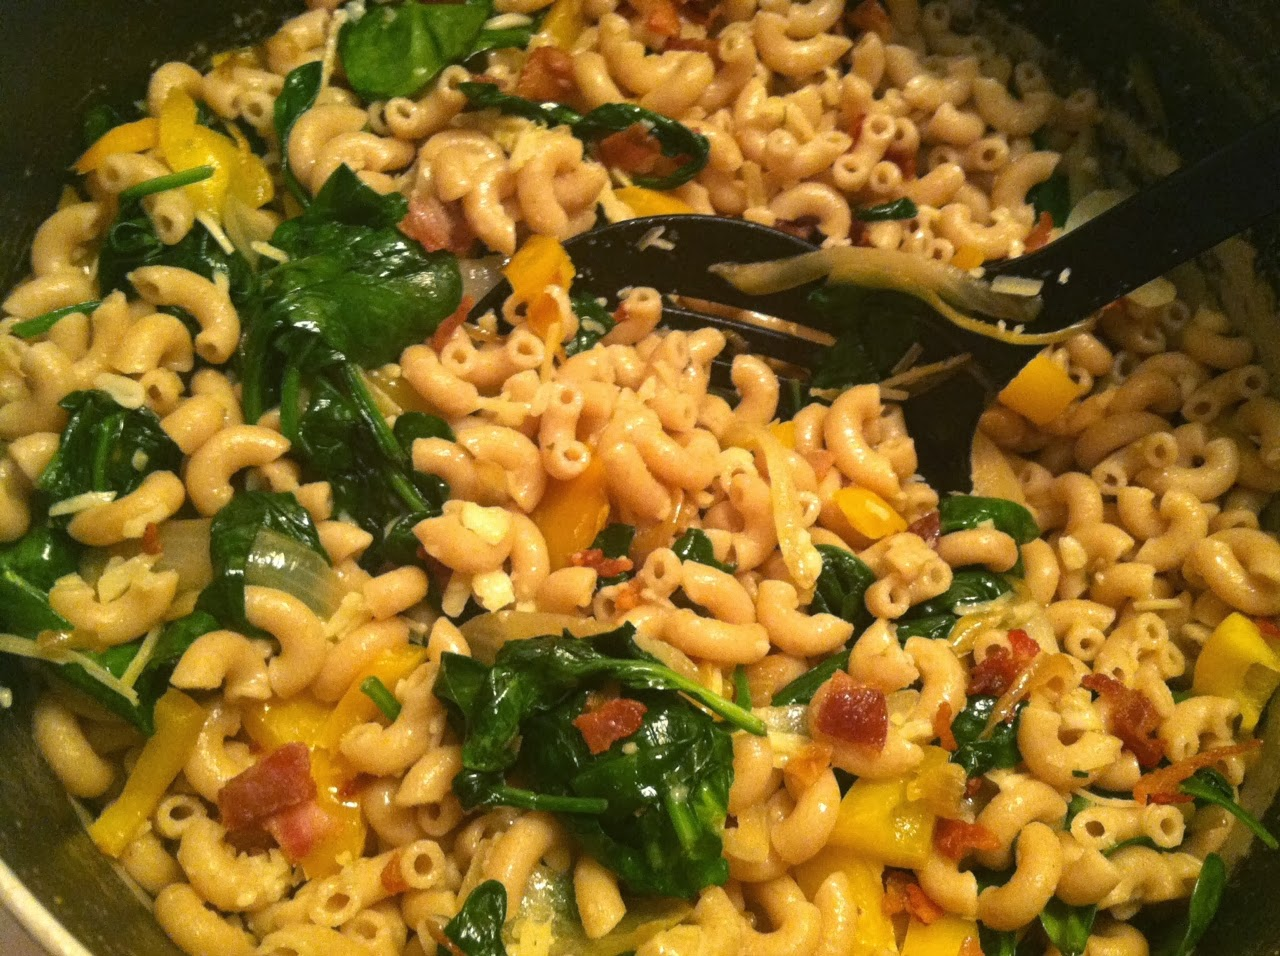 Frugal Friday pasta via Cooking Chat, tasty and budget-friendly